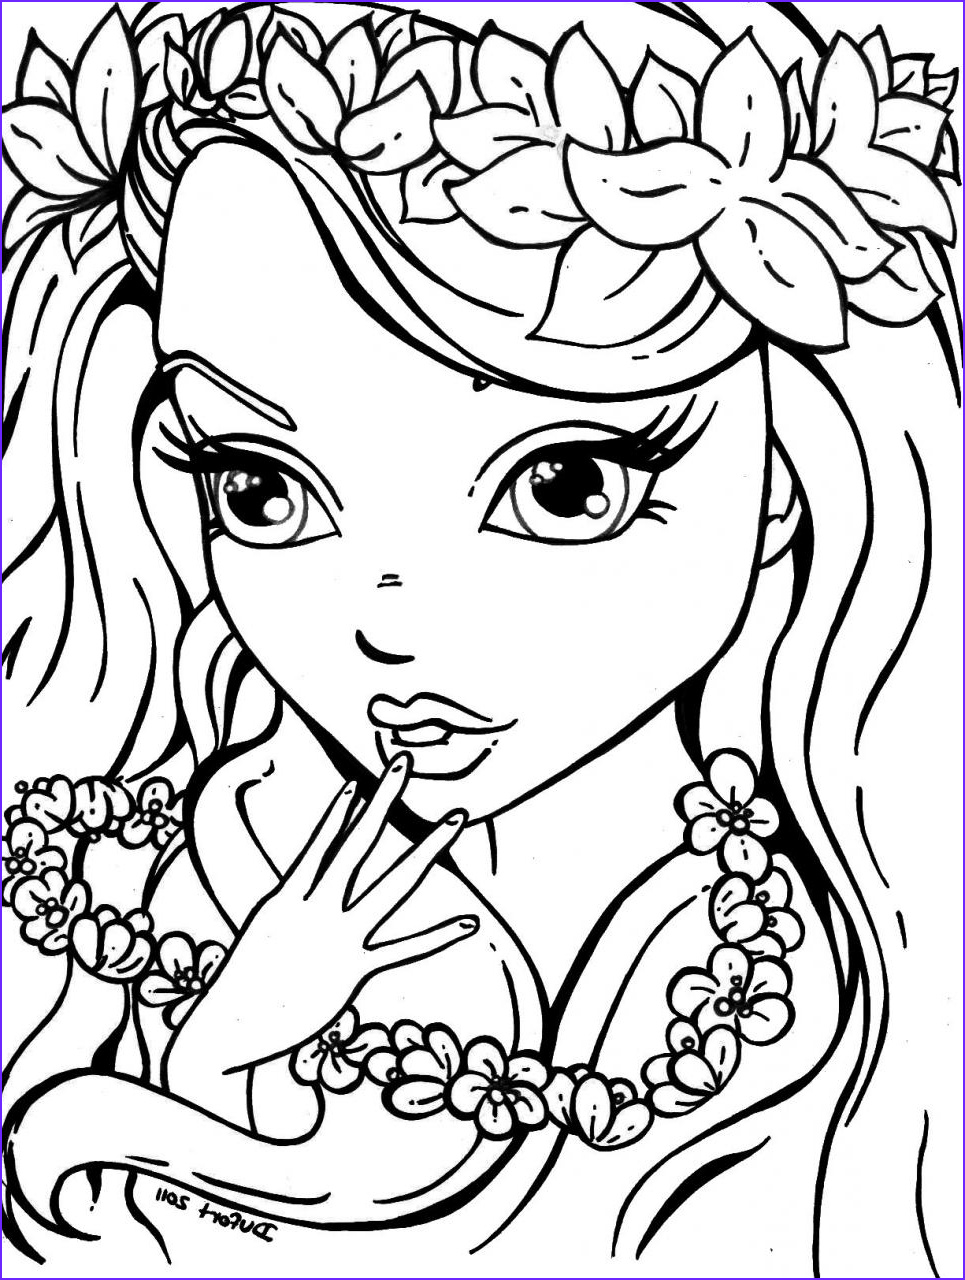 Girl Coloring Awesome Collection Coloring Pages for Girls Best Coloring Pages for Kids